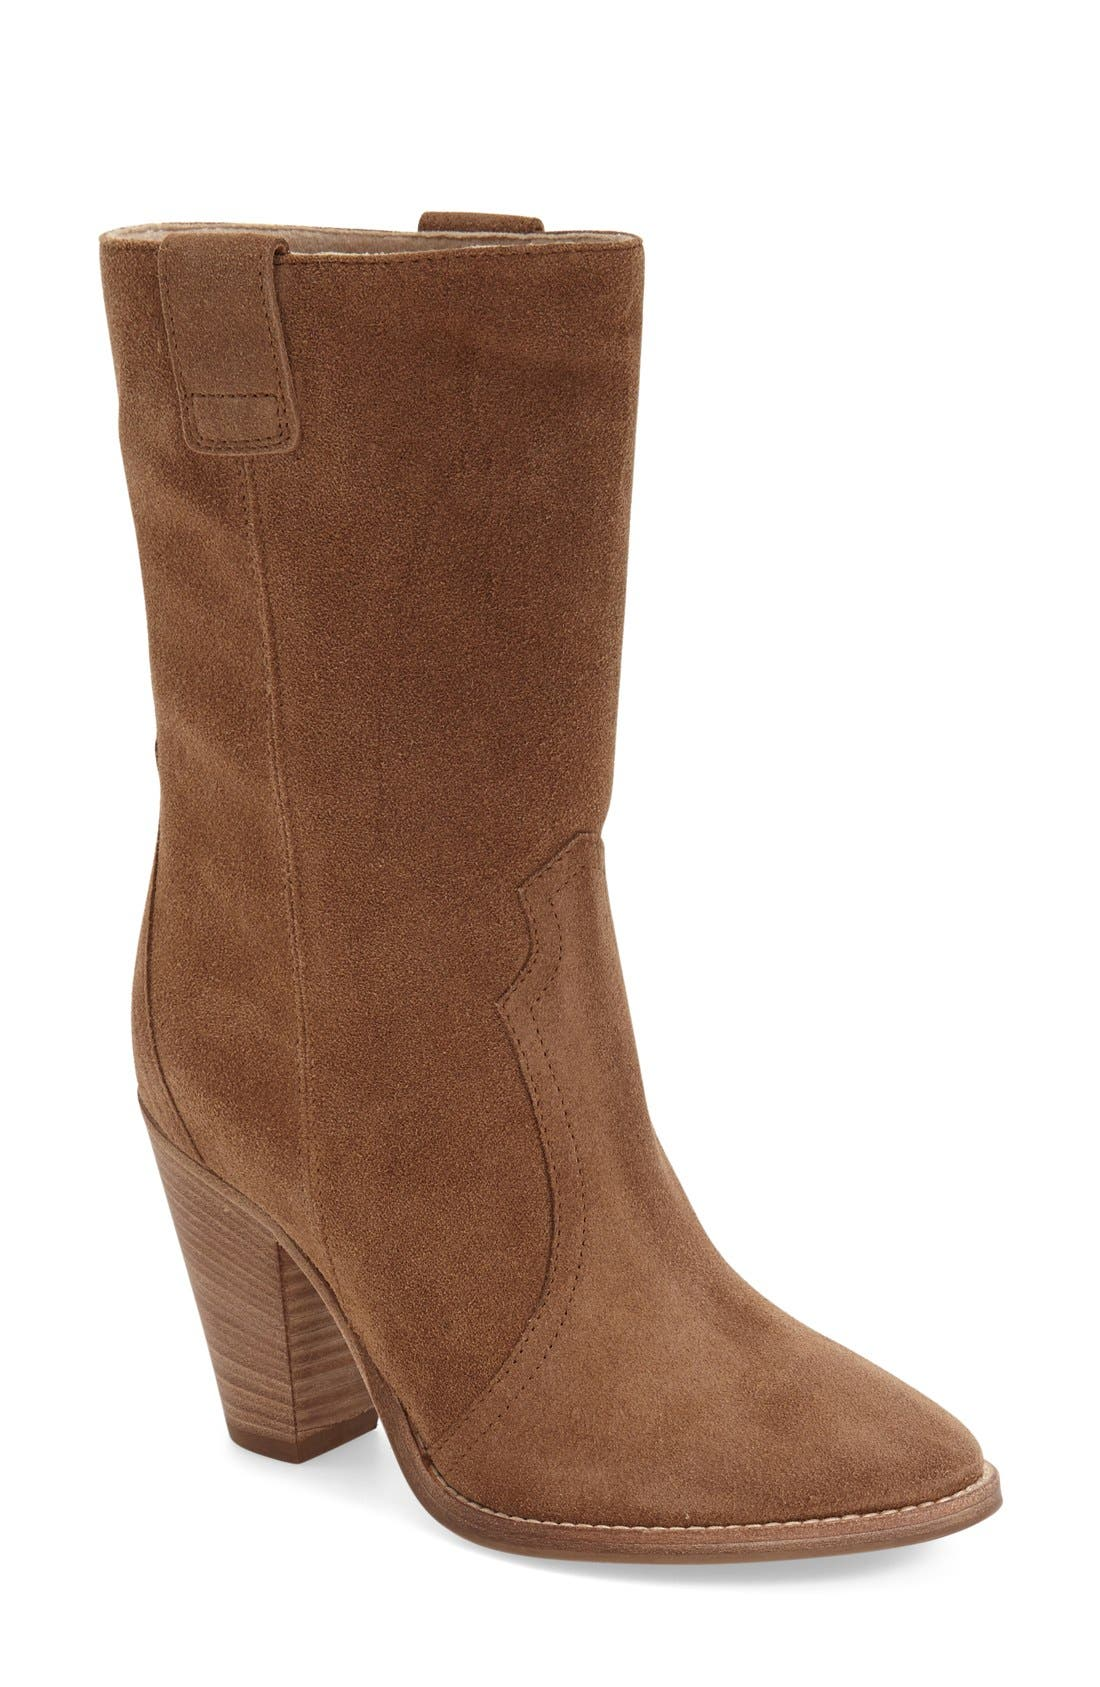 Alternate Image 1 Selected - Aquatalia 'Florence' Pointy Toe Boot (Women)